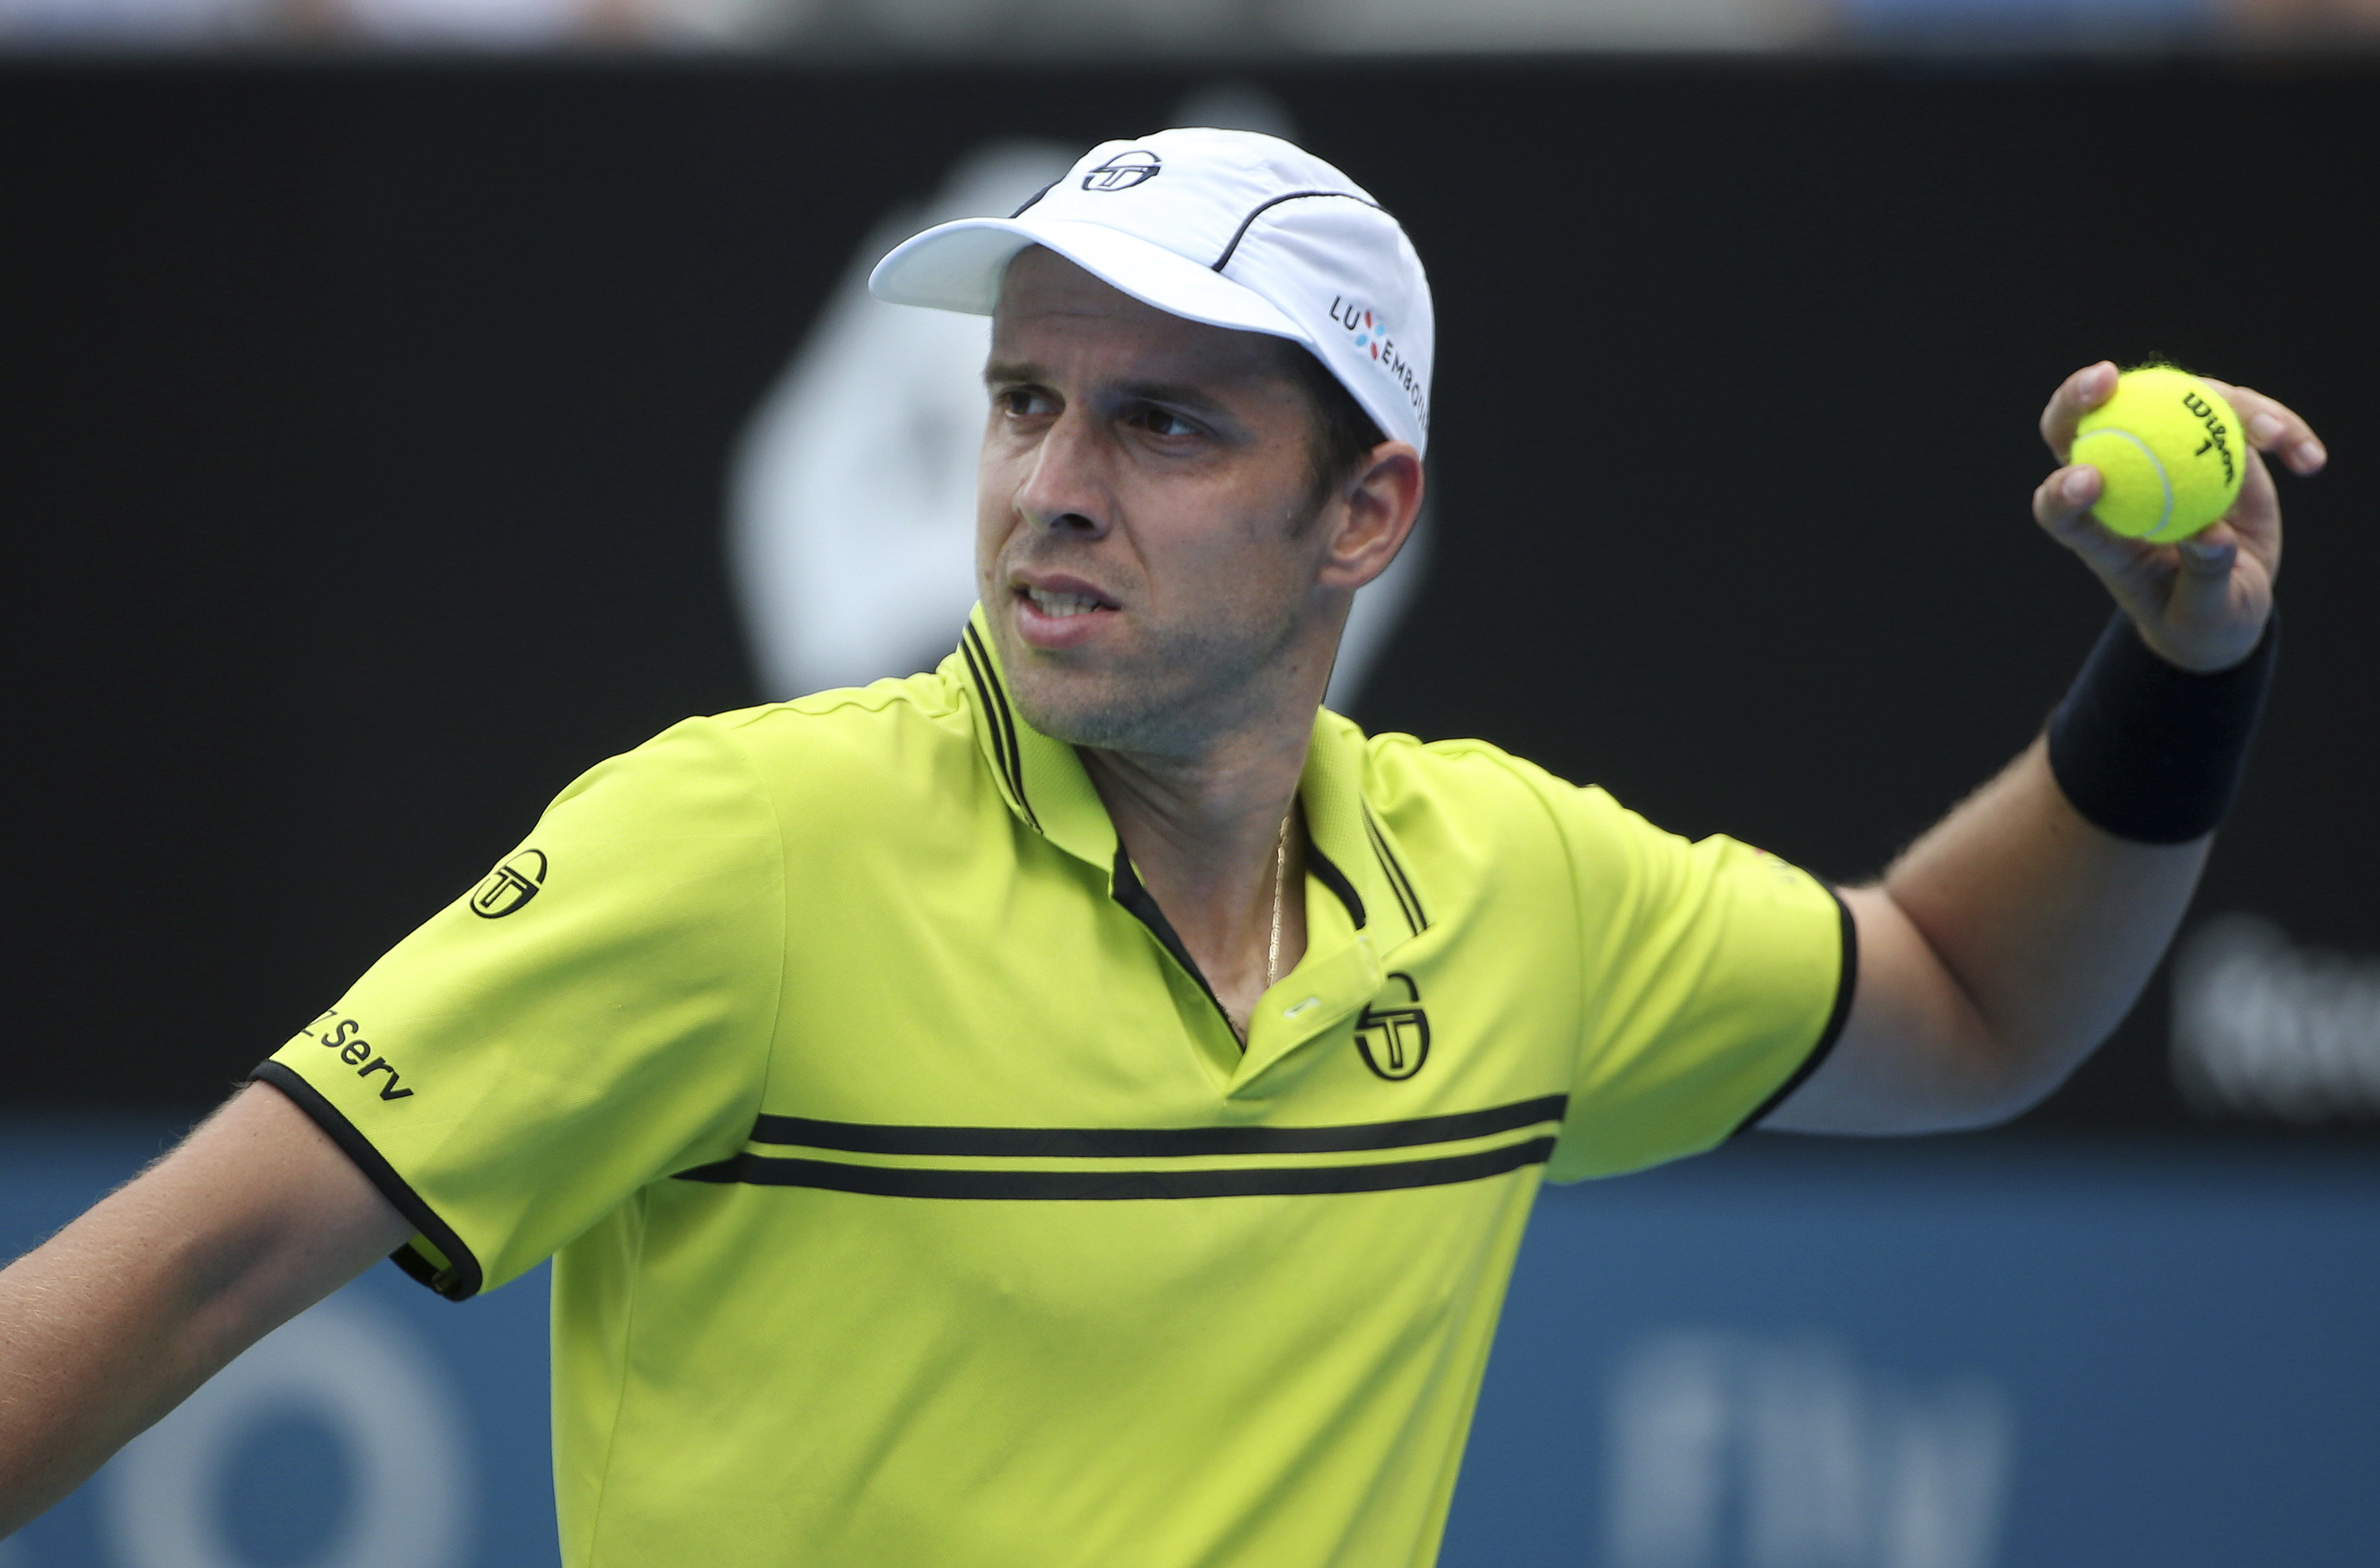 Gilles Muller of Luxembourg throws a ball while playing Pablo Cuevas of Uruguay during their men's quarterfinal singles match at the Sydney International tennis tournament in Sydney Thursday, Jan. 12, 2017. (AP Photo/Rick Rycroft)